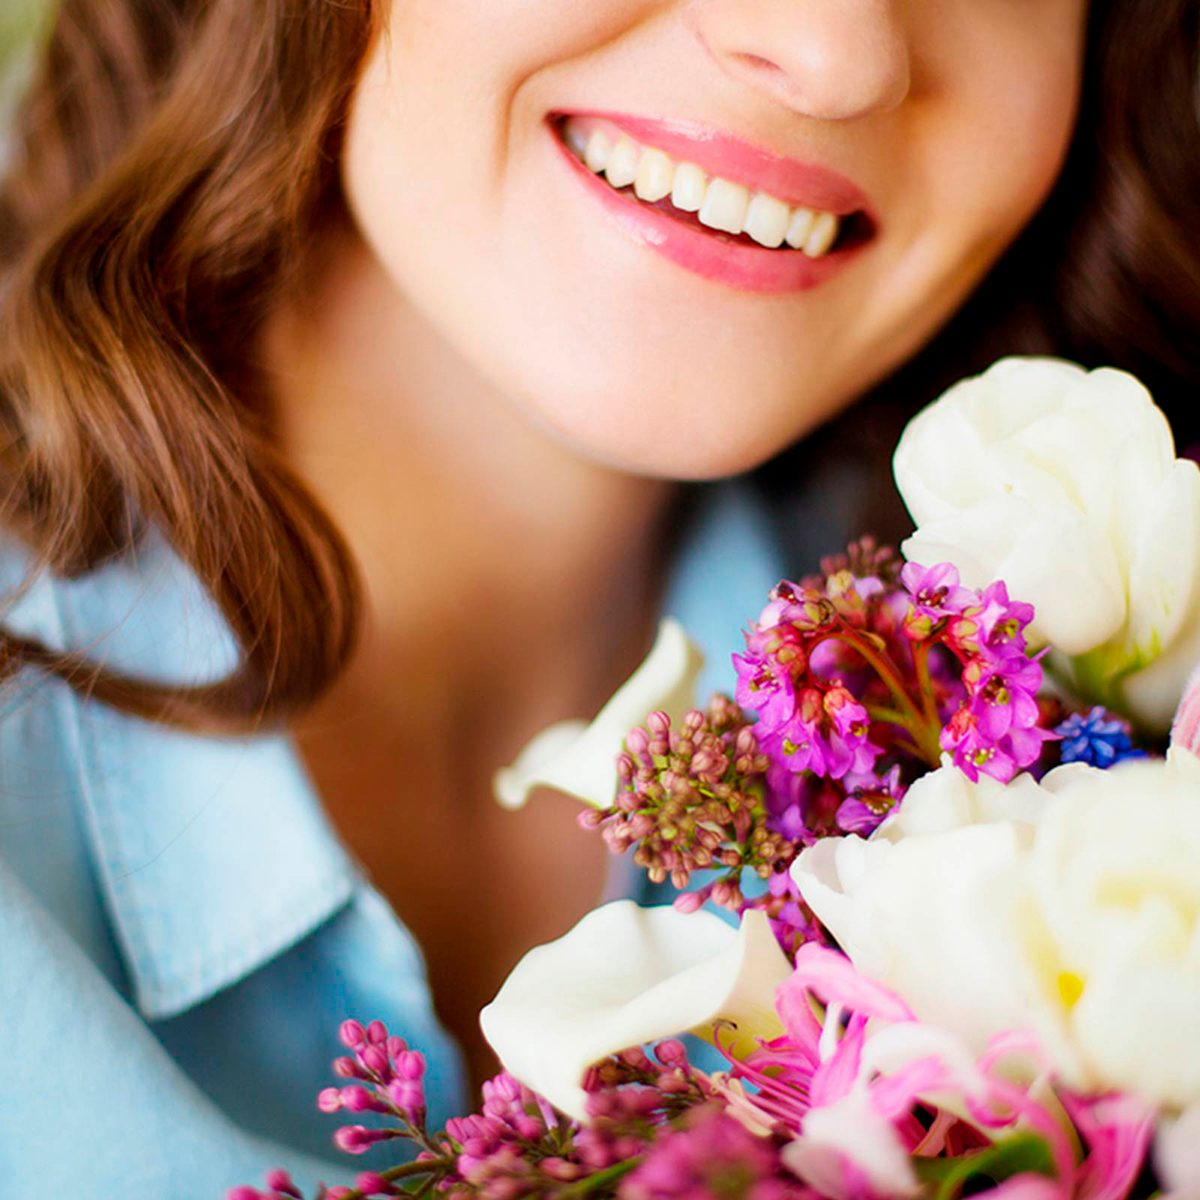 Woman smiling while holding flowers